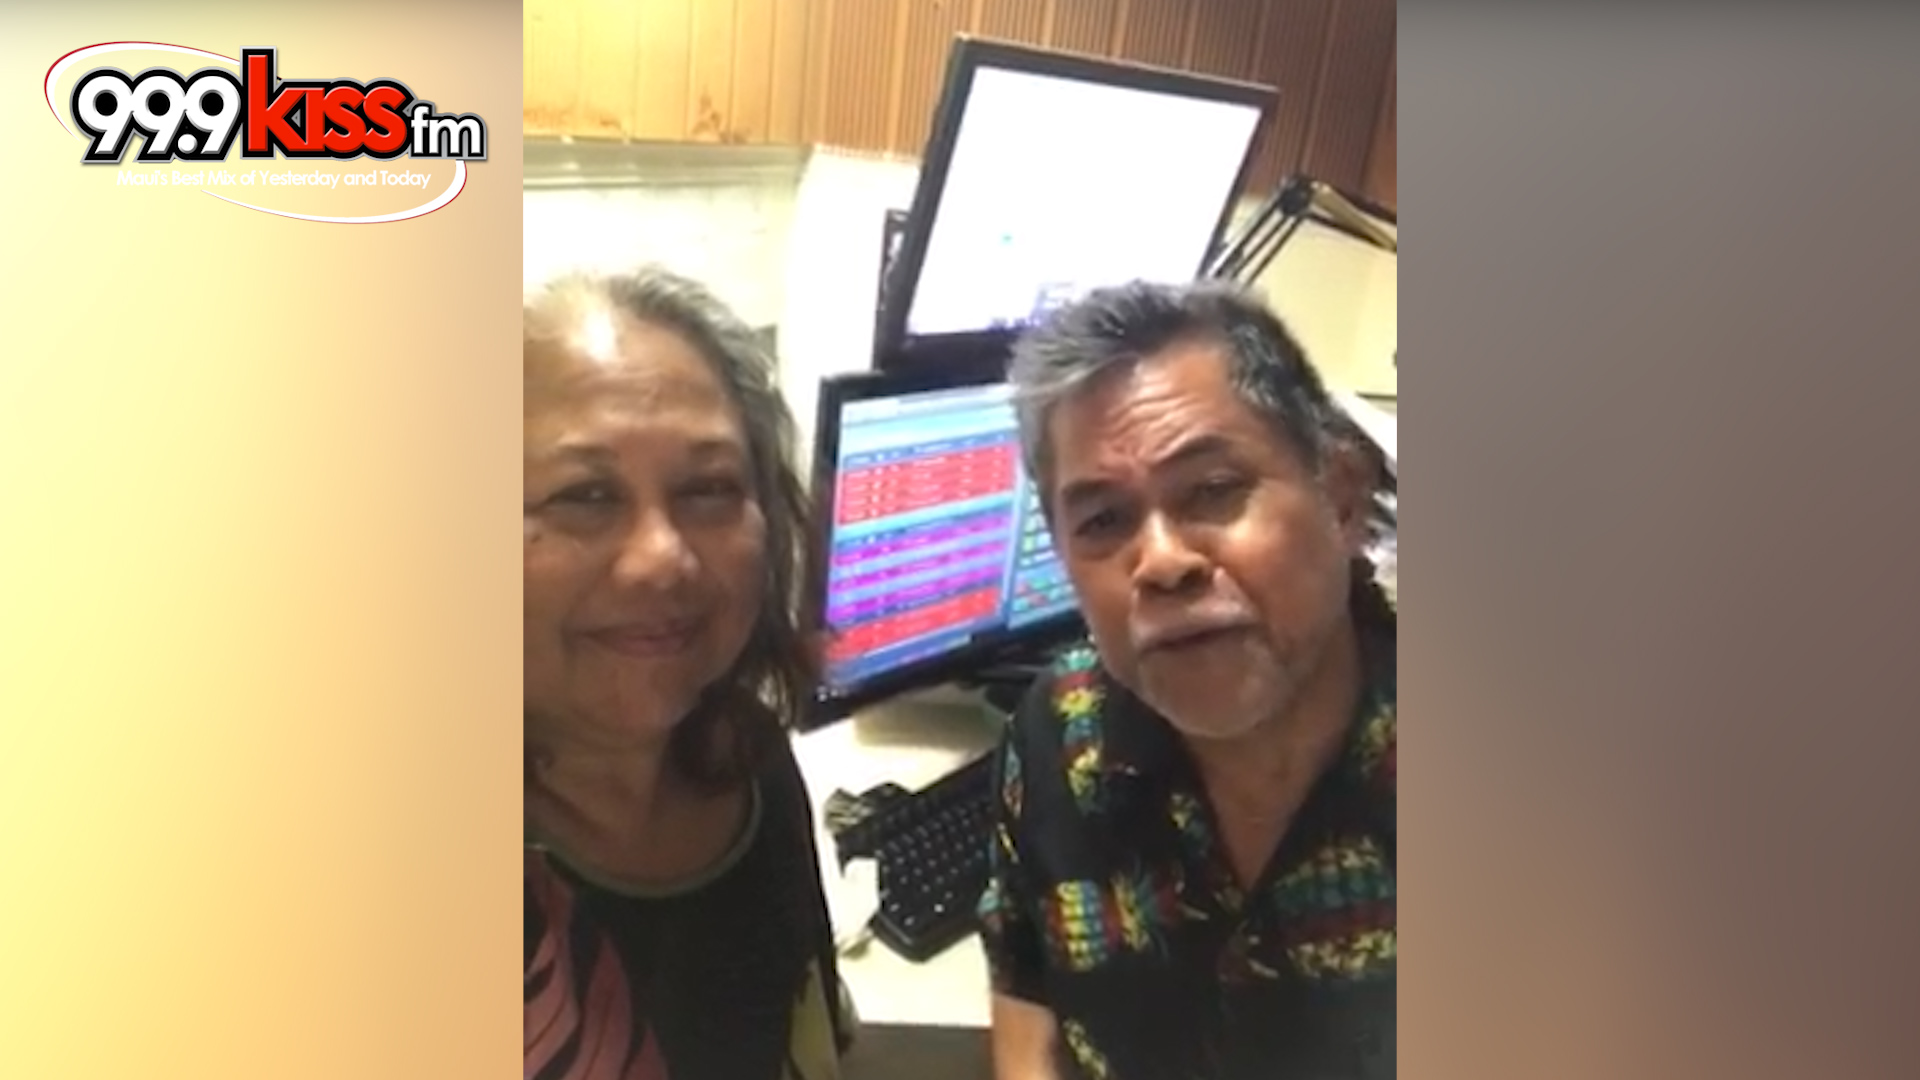 KISS FM Maui Launches Listener Survey and $5,000 Media Credit for Local Nonprofit